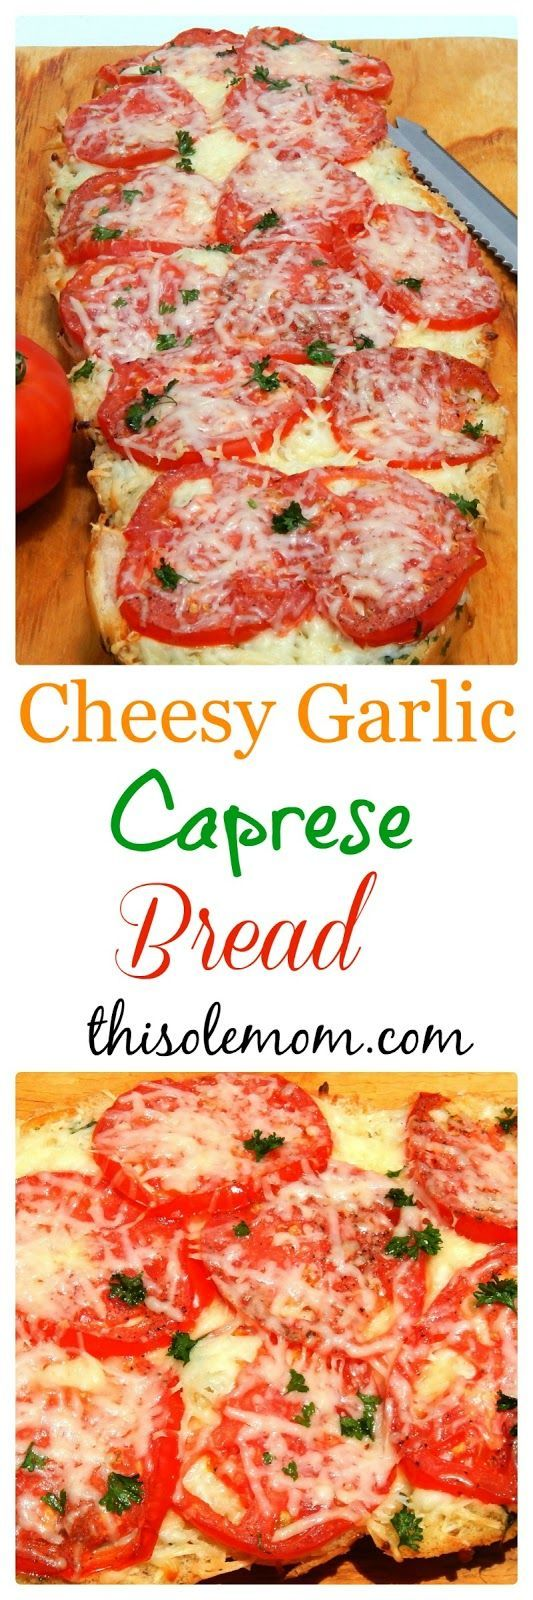 You must try this! This addicting Cheesy Garlic Caprese Bread is sure to please even the pickiest eaters! Made with fresh tomatoes, herbs, garlic , and 2 different kind of cheese.  It's Mouthwatering and simple to make.